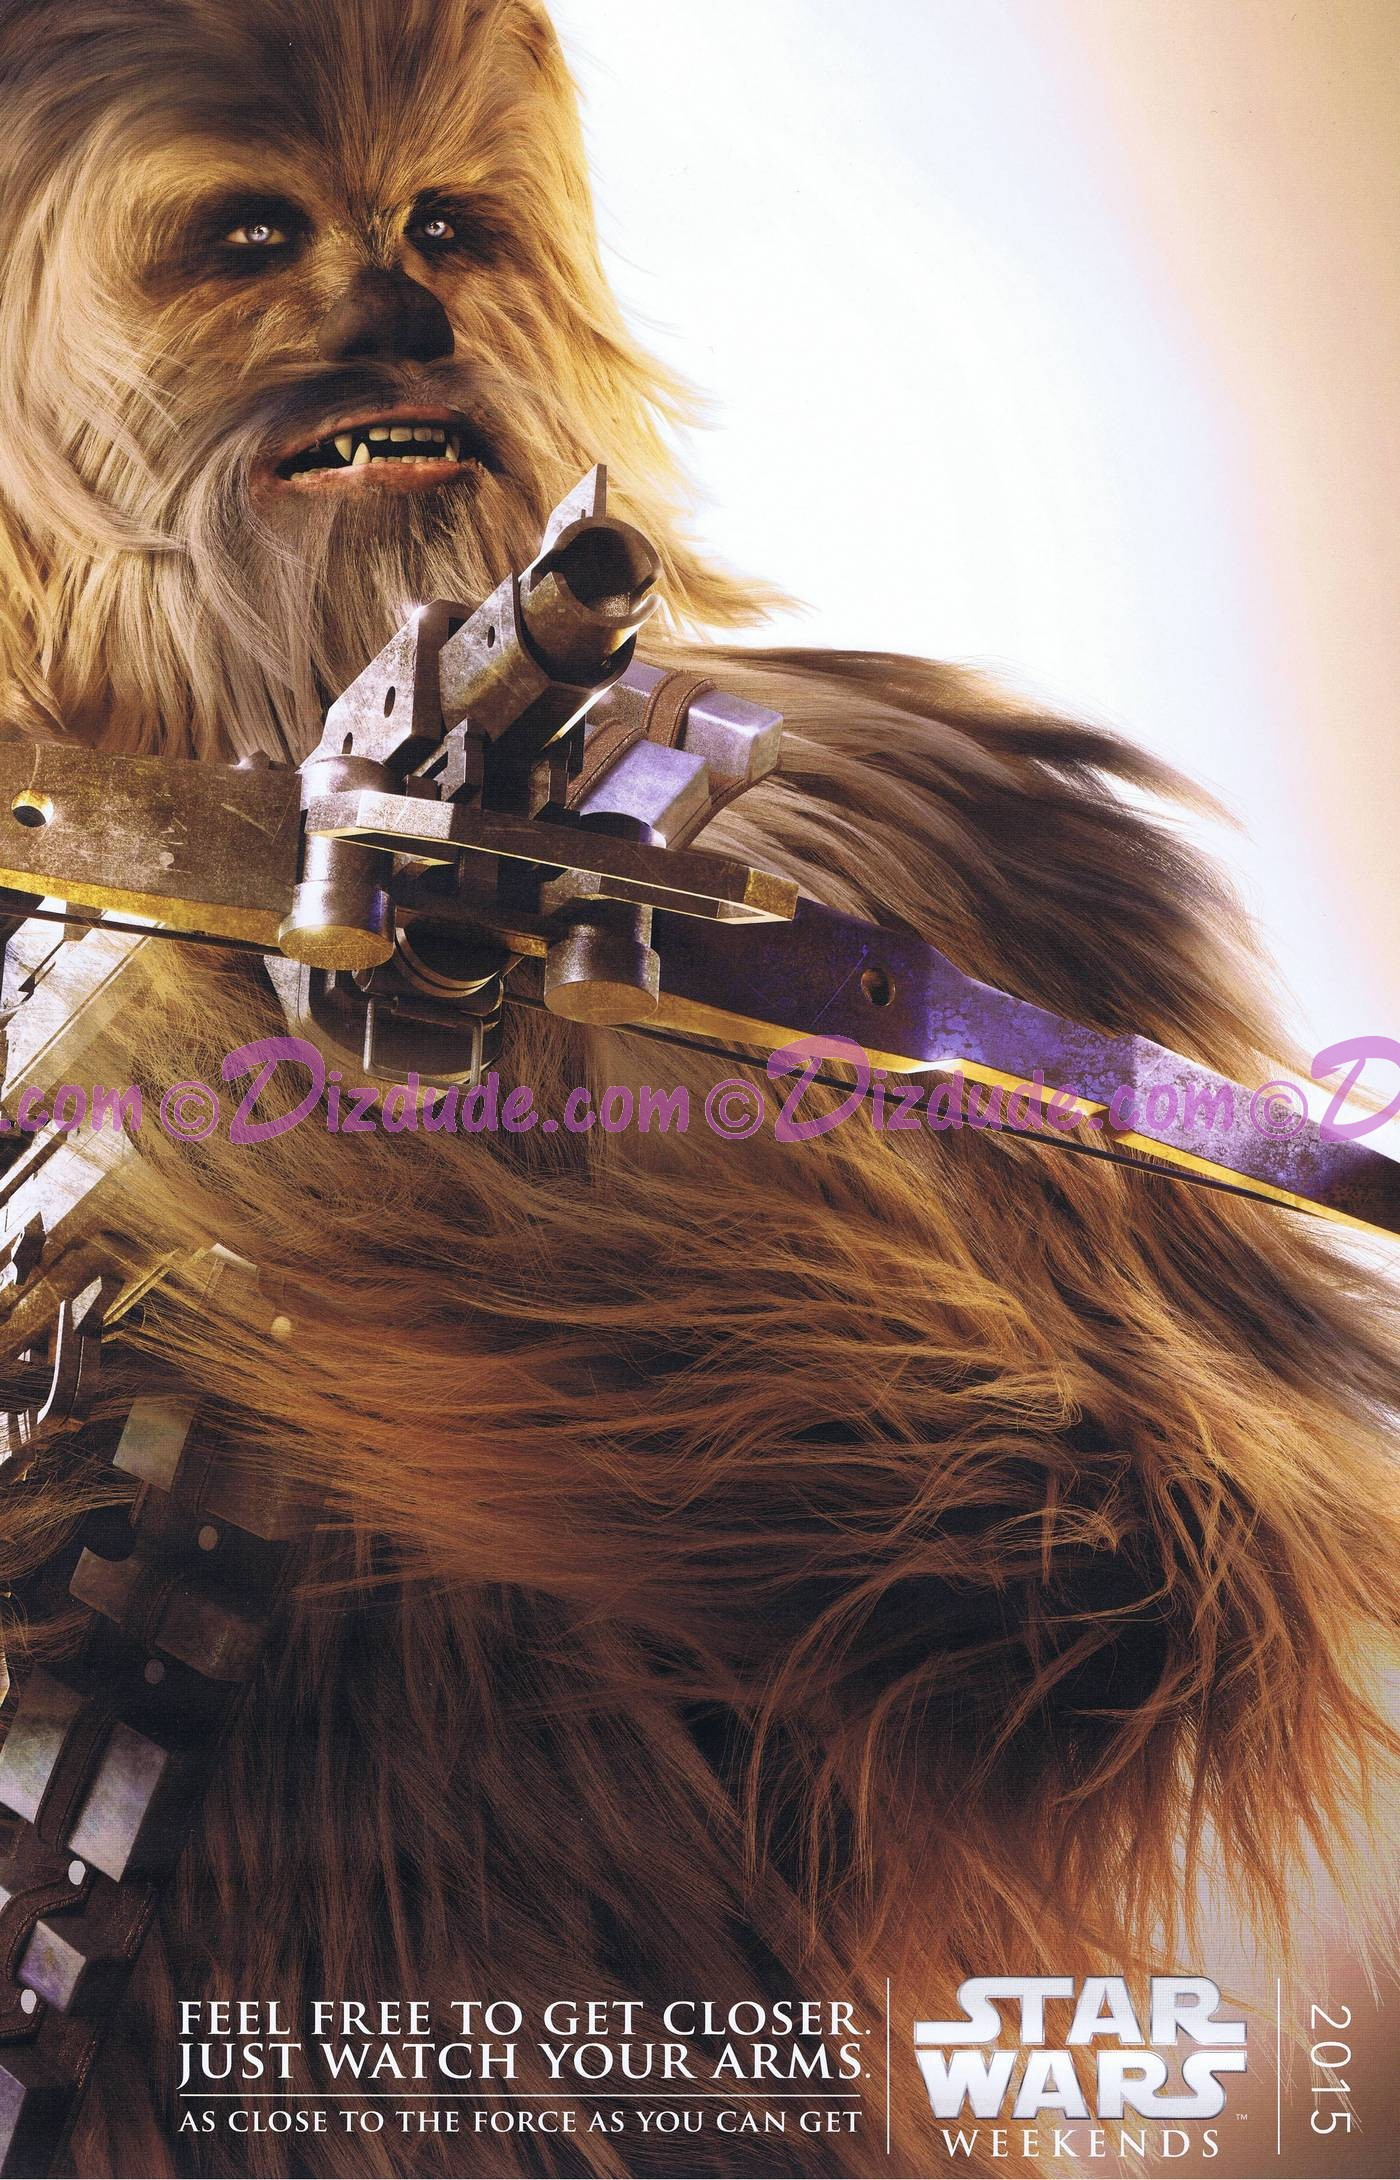 Disney Star Wars Weekends 2015 Week 5 Chewbacca Passholder Poster Event Exclusive © Dizdude.com